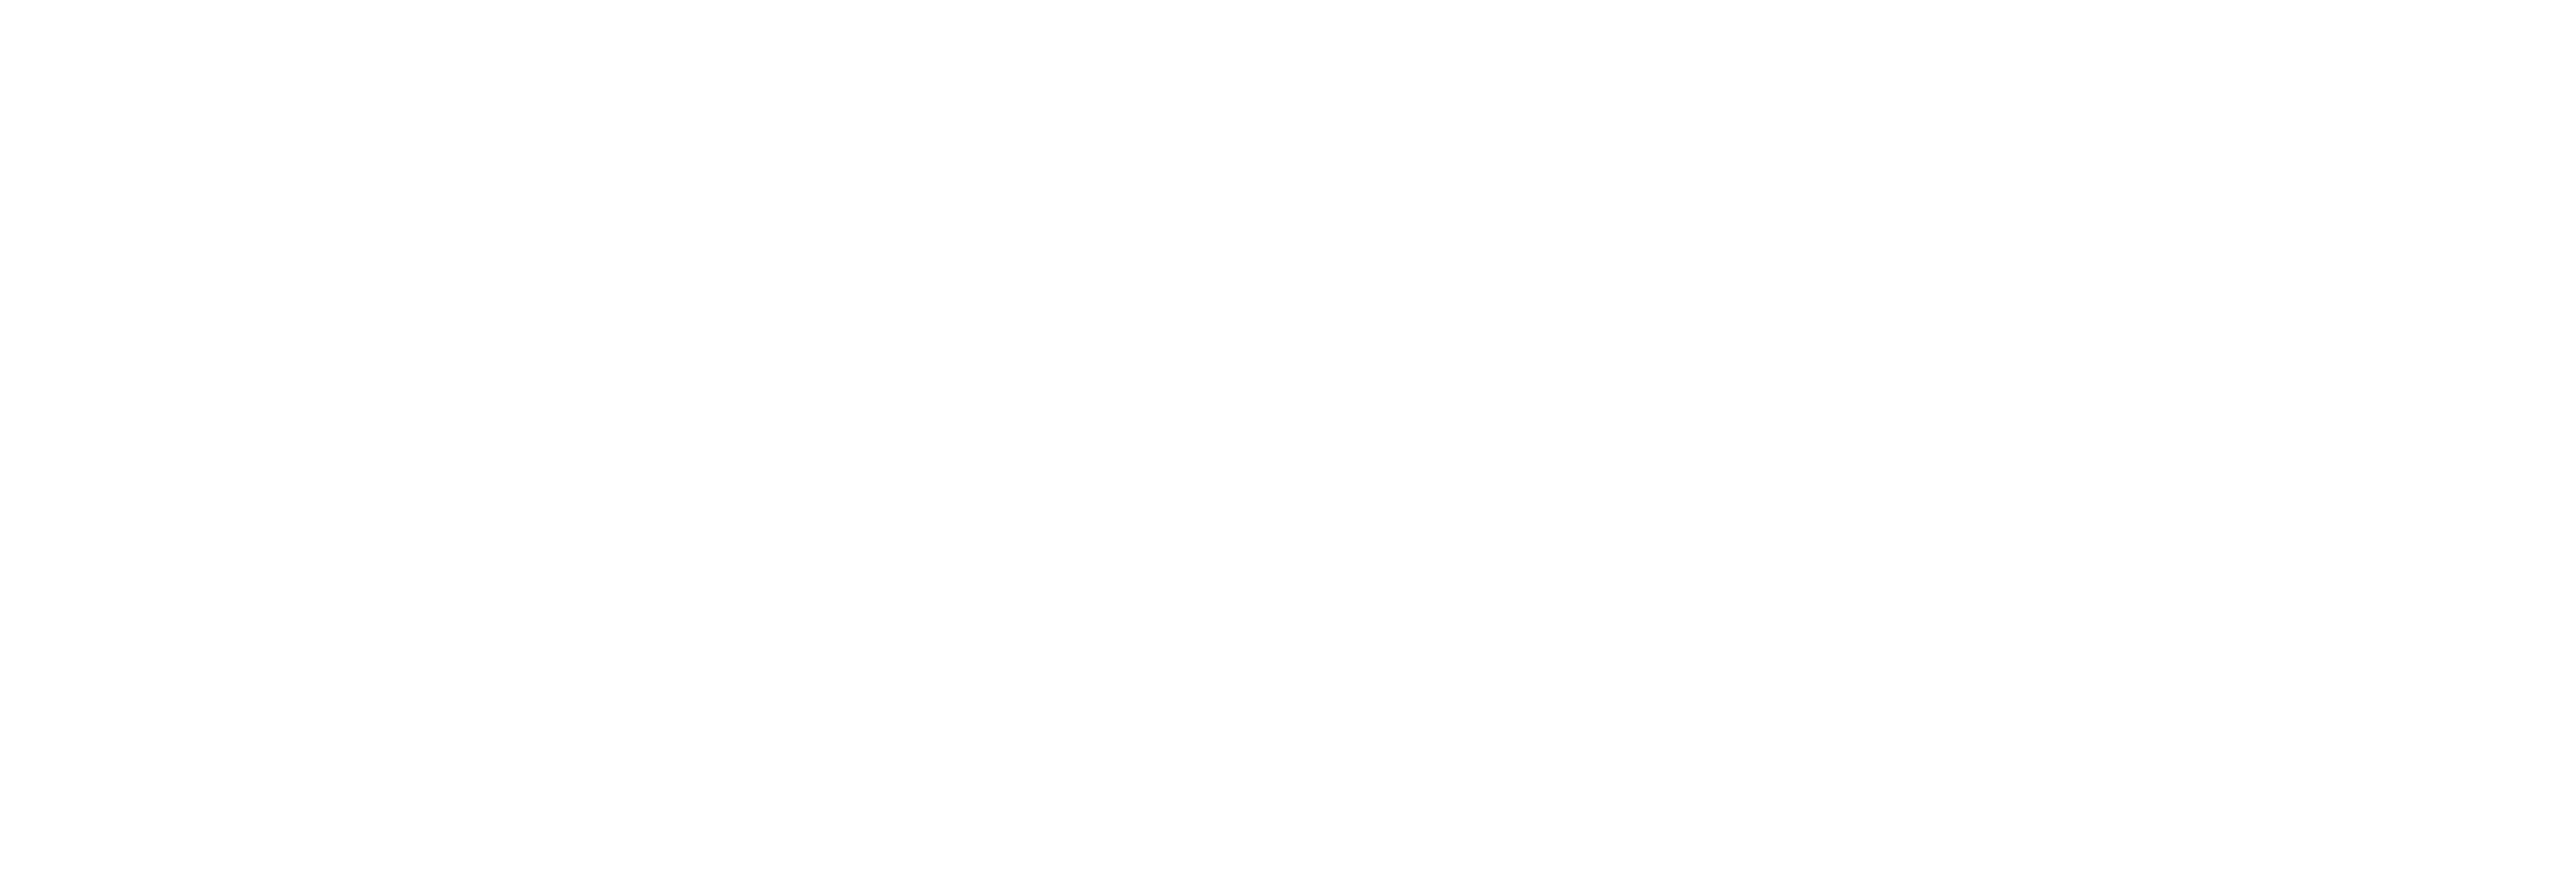 sapbw-consulting